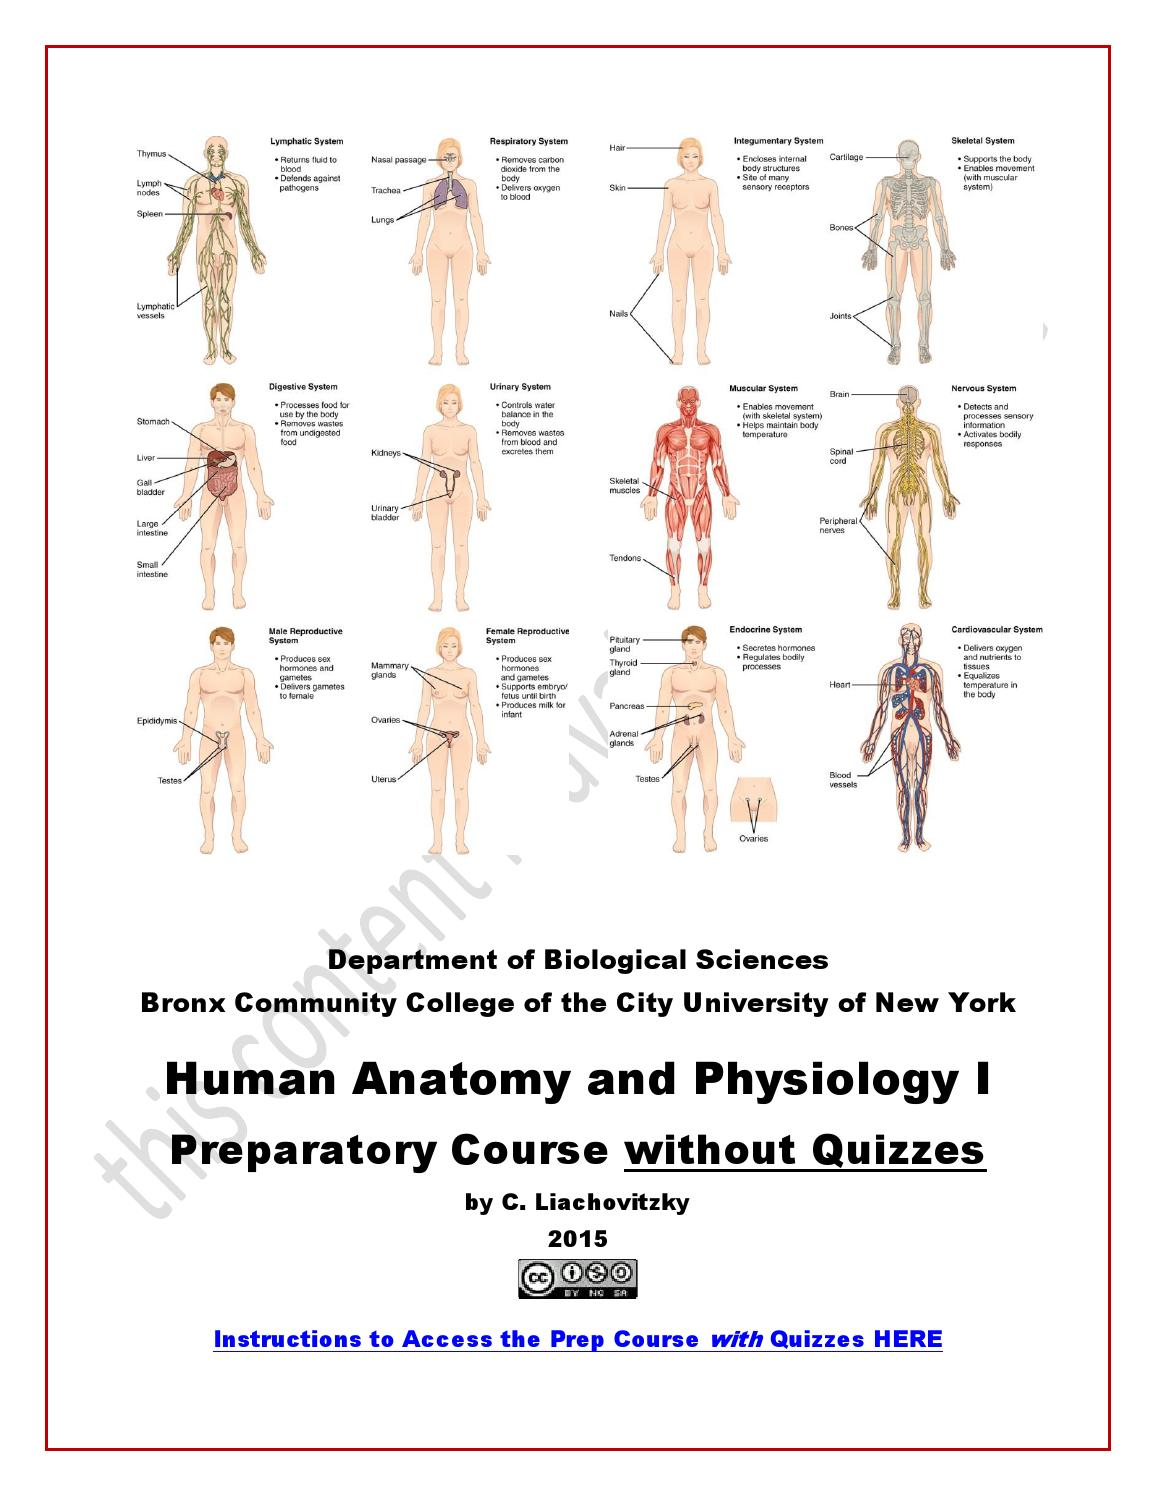 Human anatomy college course